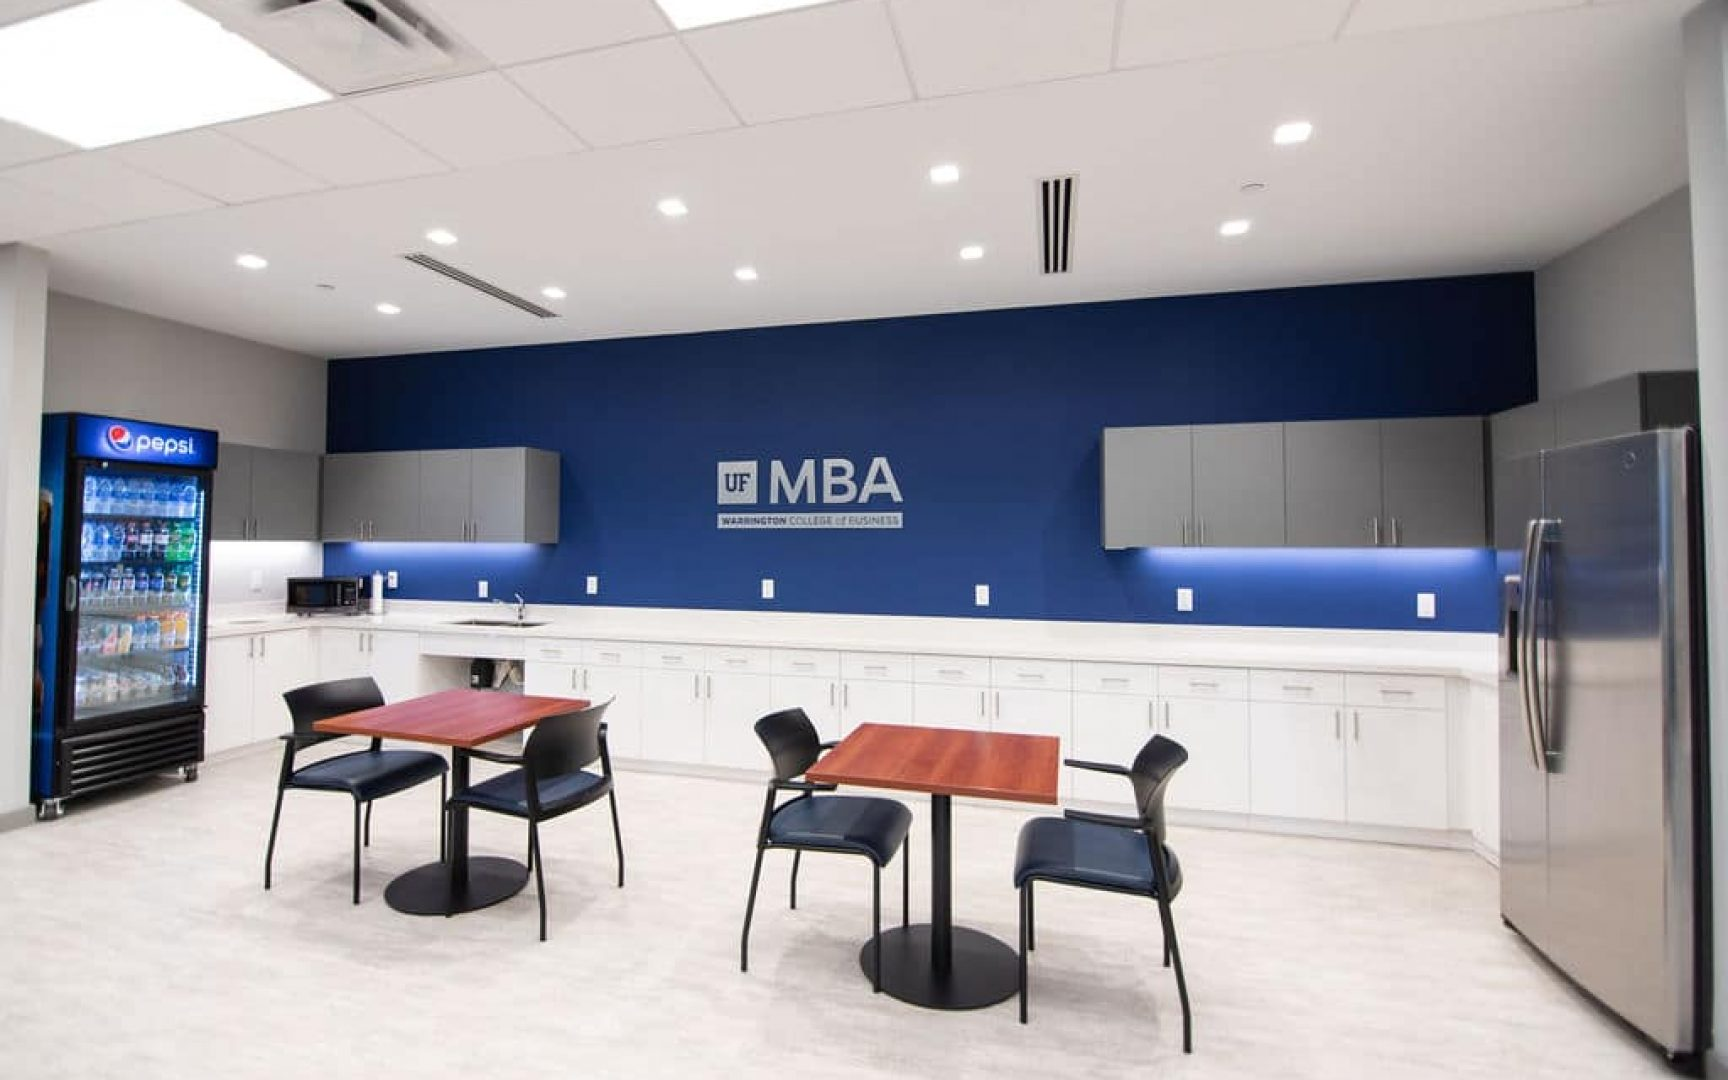 Kitchen area in UF MBA South Florida Miramar location